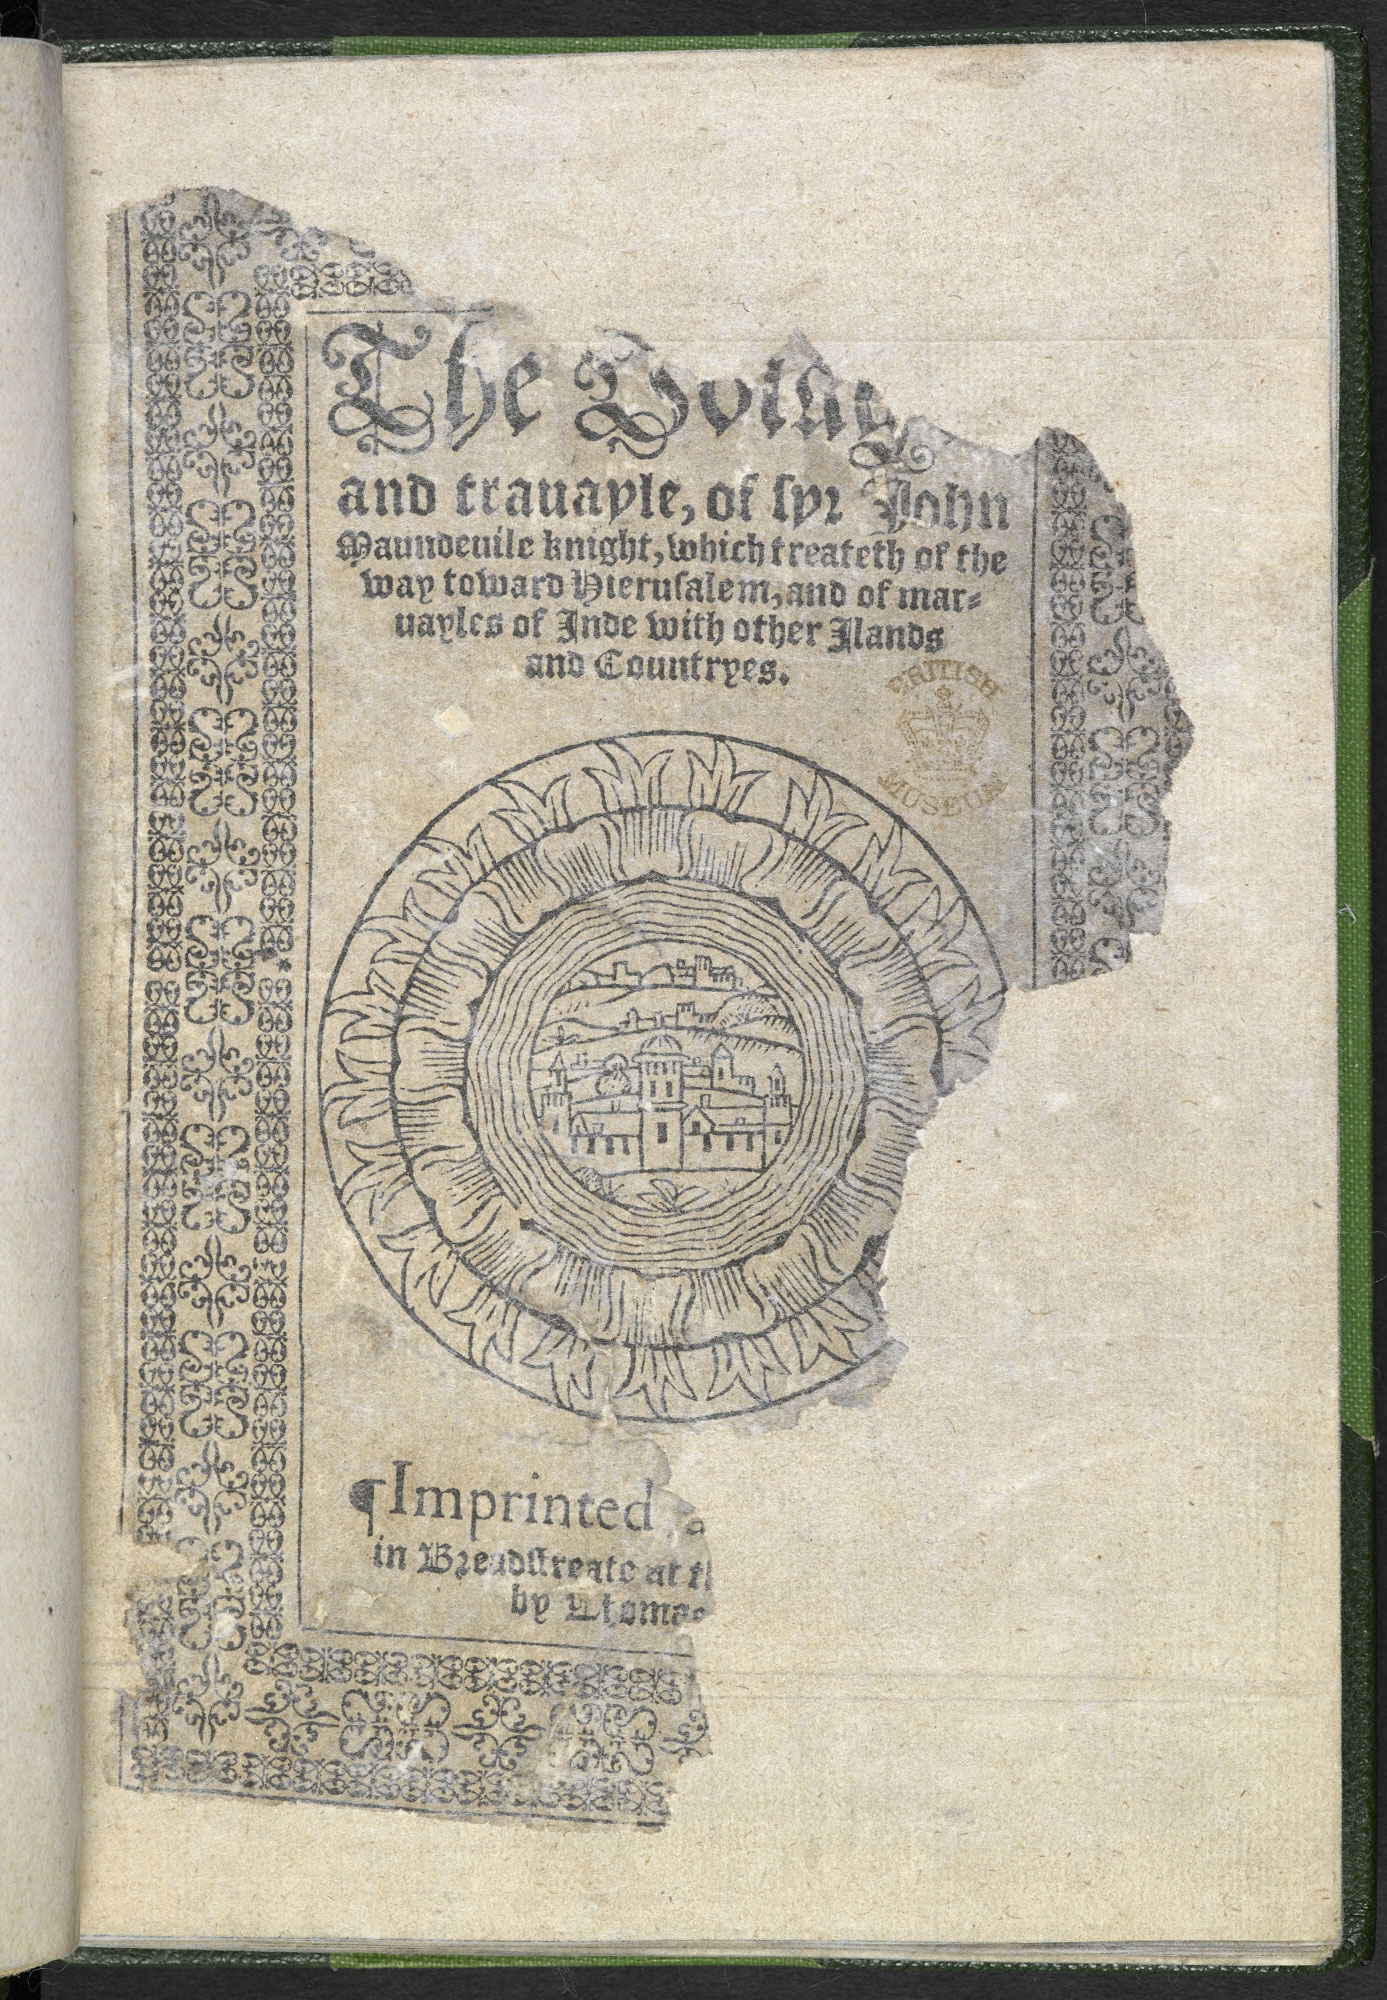 Illustrated edition of Mandeville's Travels, 1568